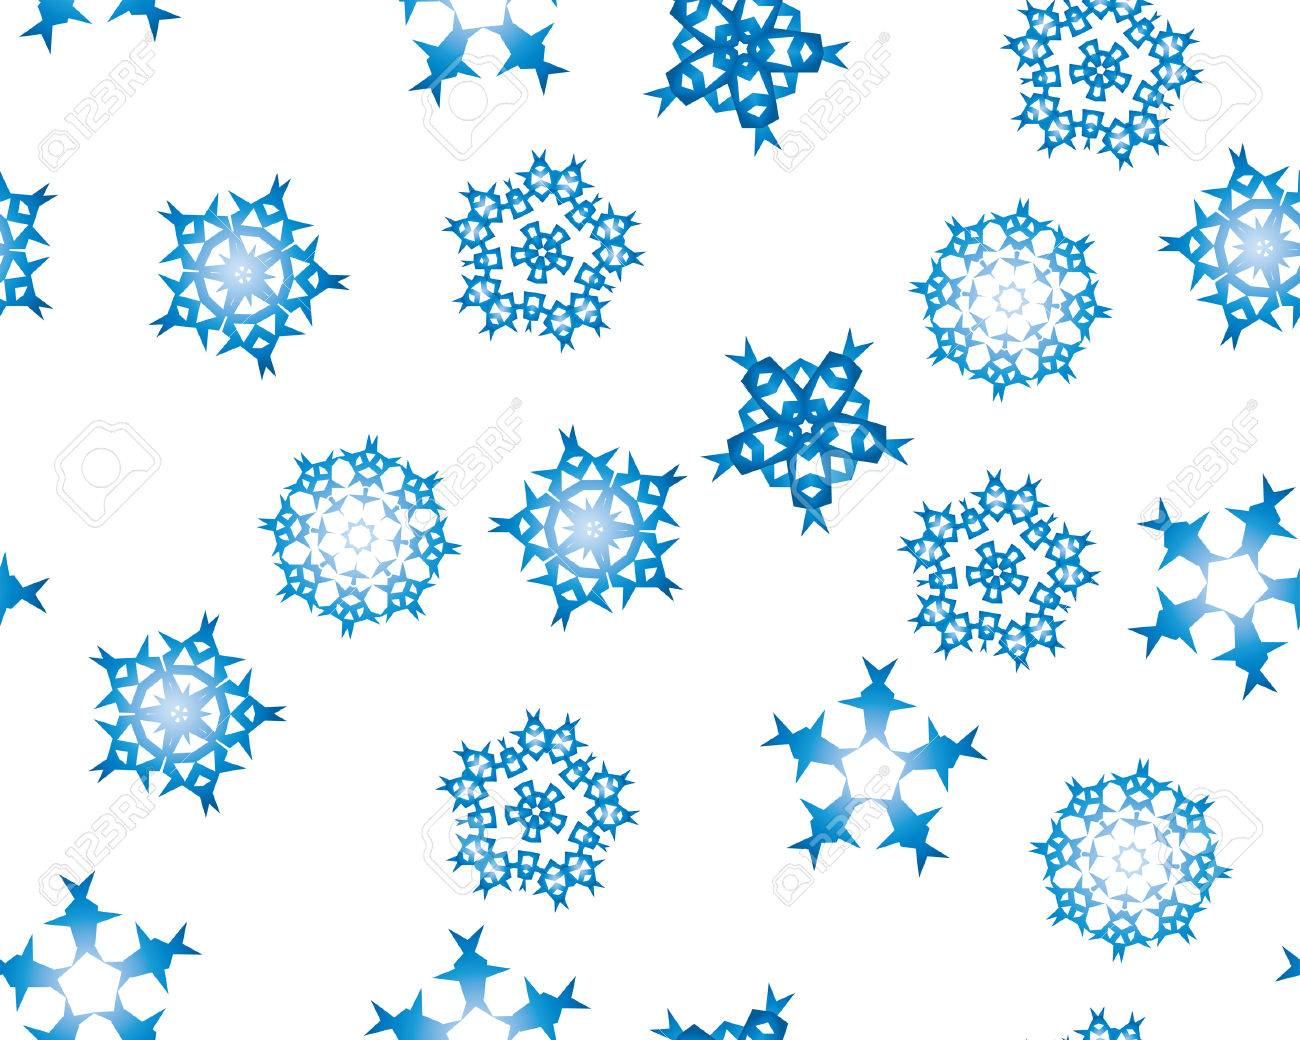 Seamless background with winter snowflakes for designer use Stock Vector - 3886583